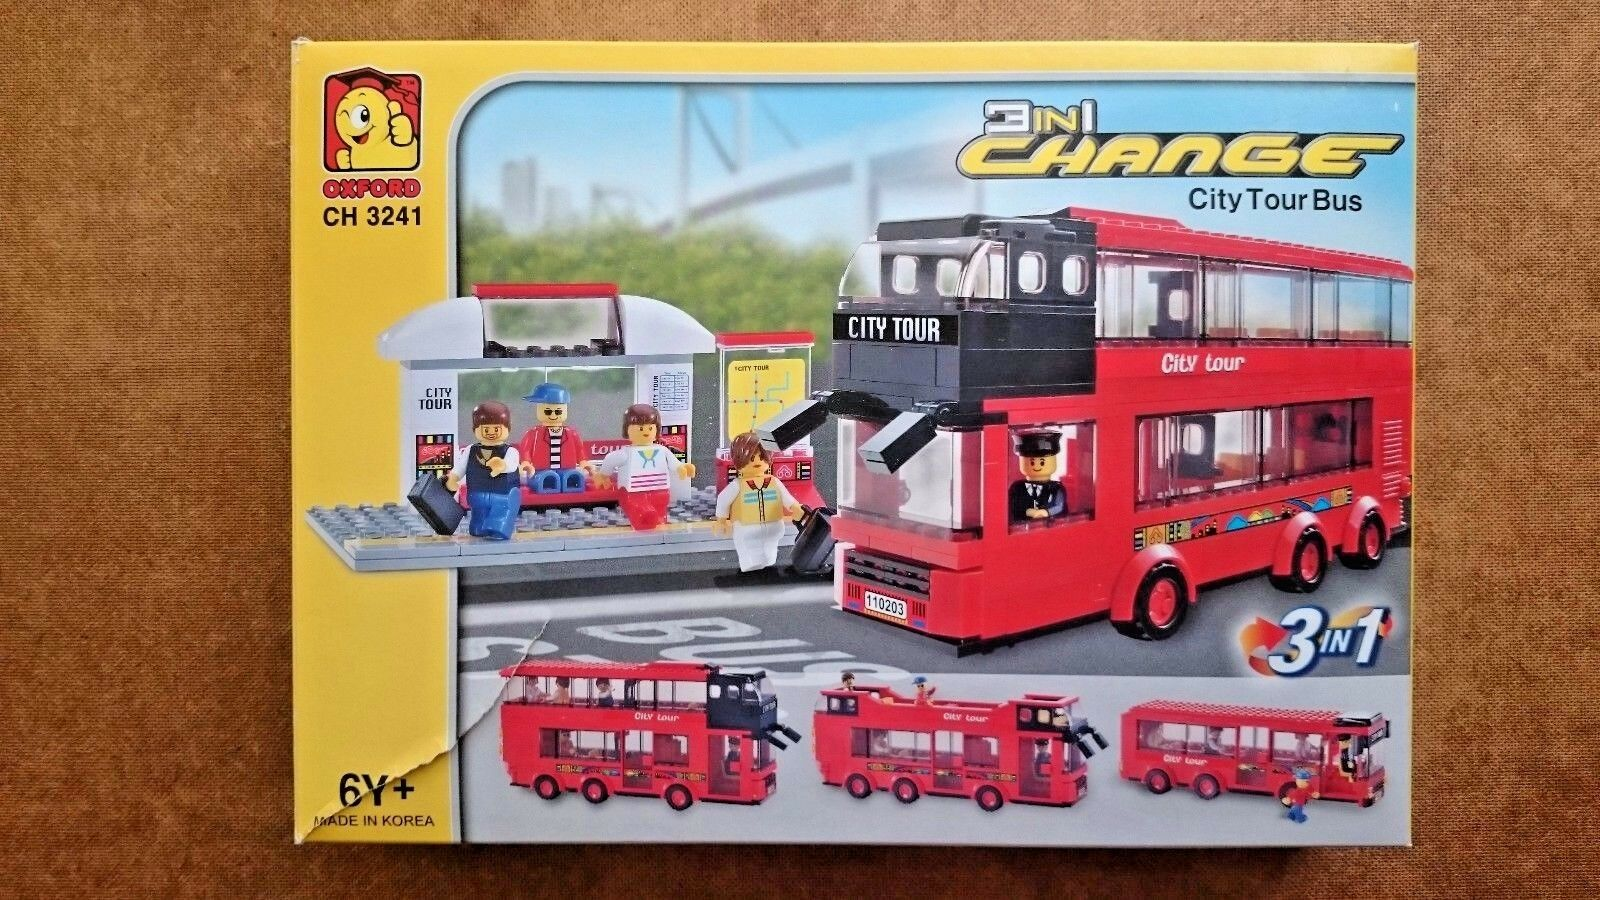 3 in 1 Change City Tour Bus by Oxford (CH3241) New and Sealed